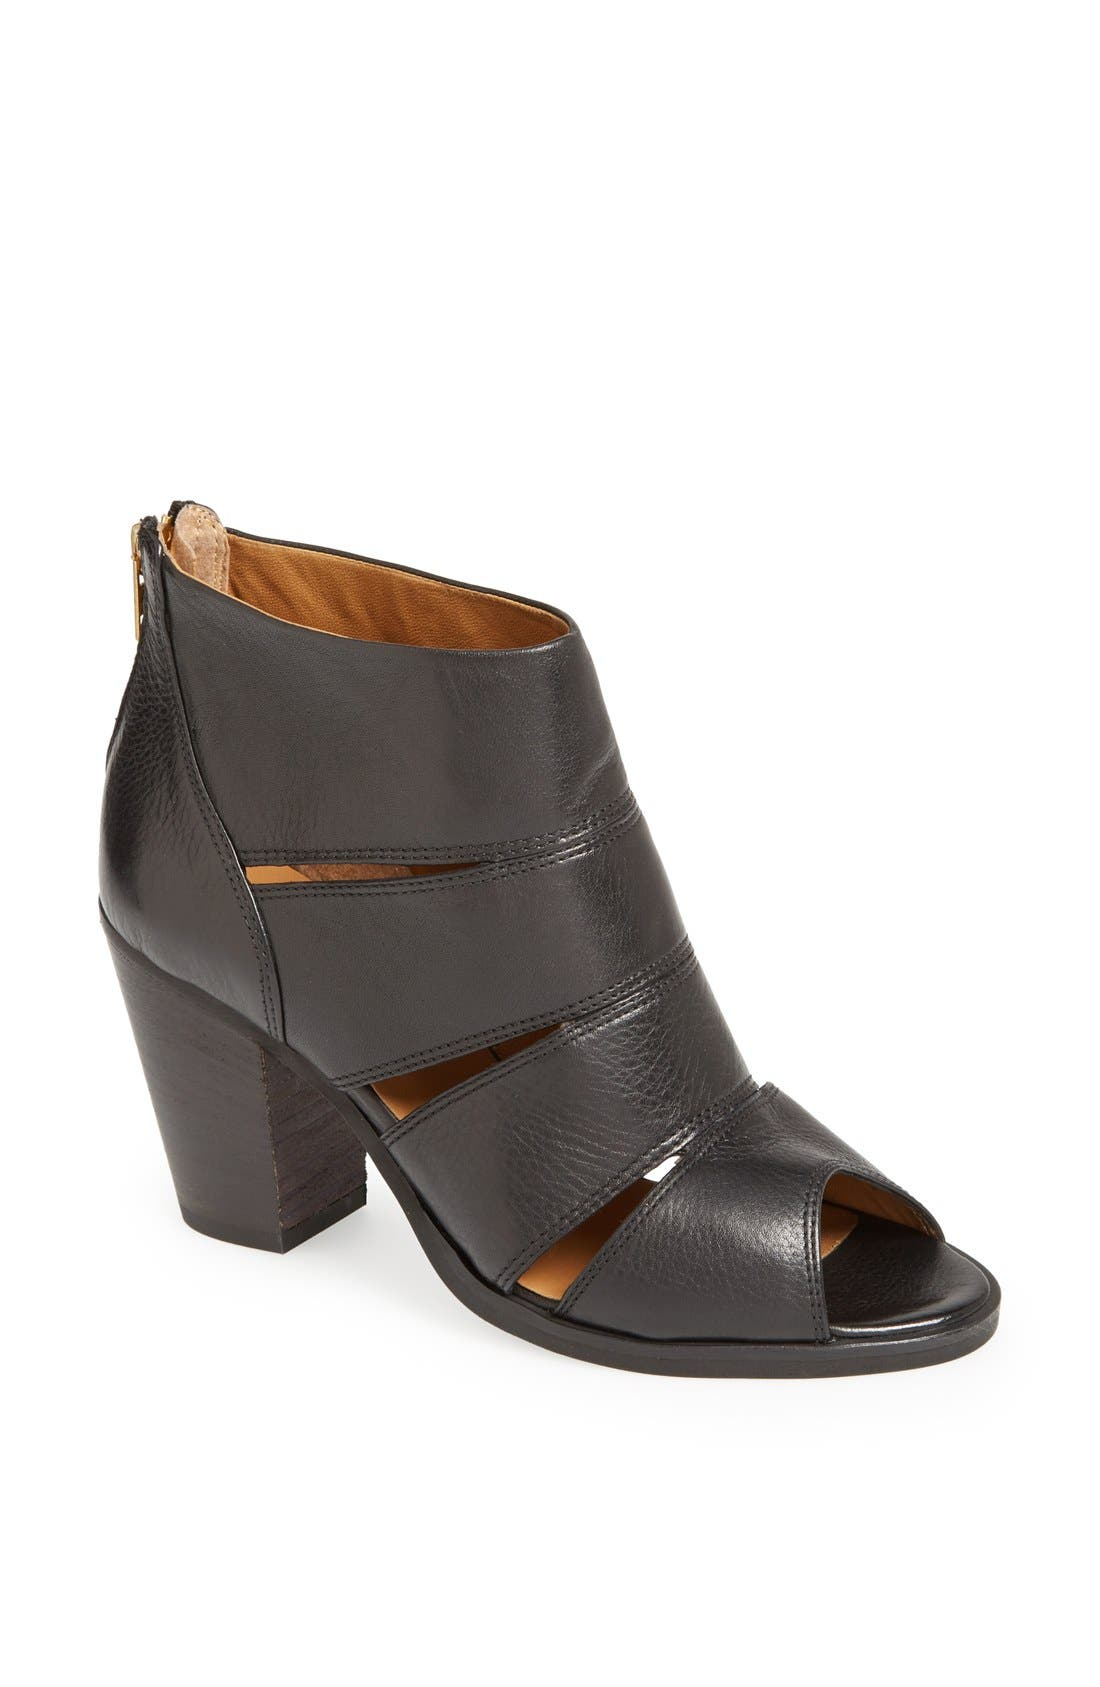 Alternate Image 1 Selected - Carvela Kurt Geiger 'Kiwi' Open Toe Bootie